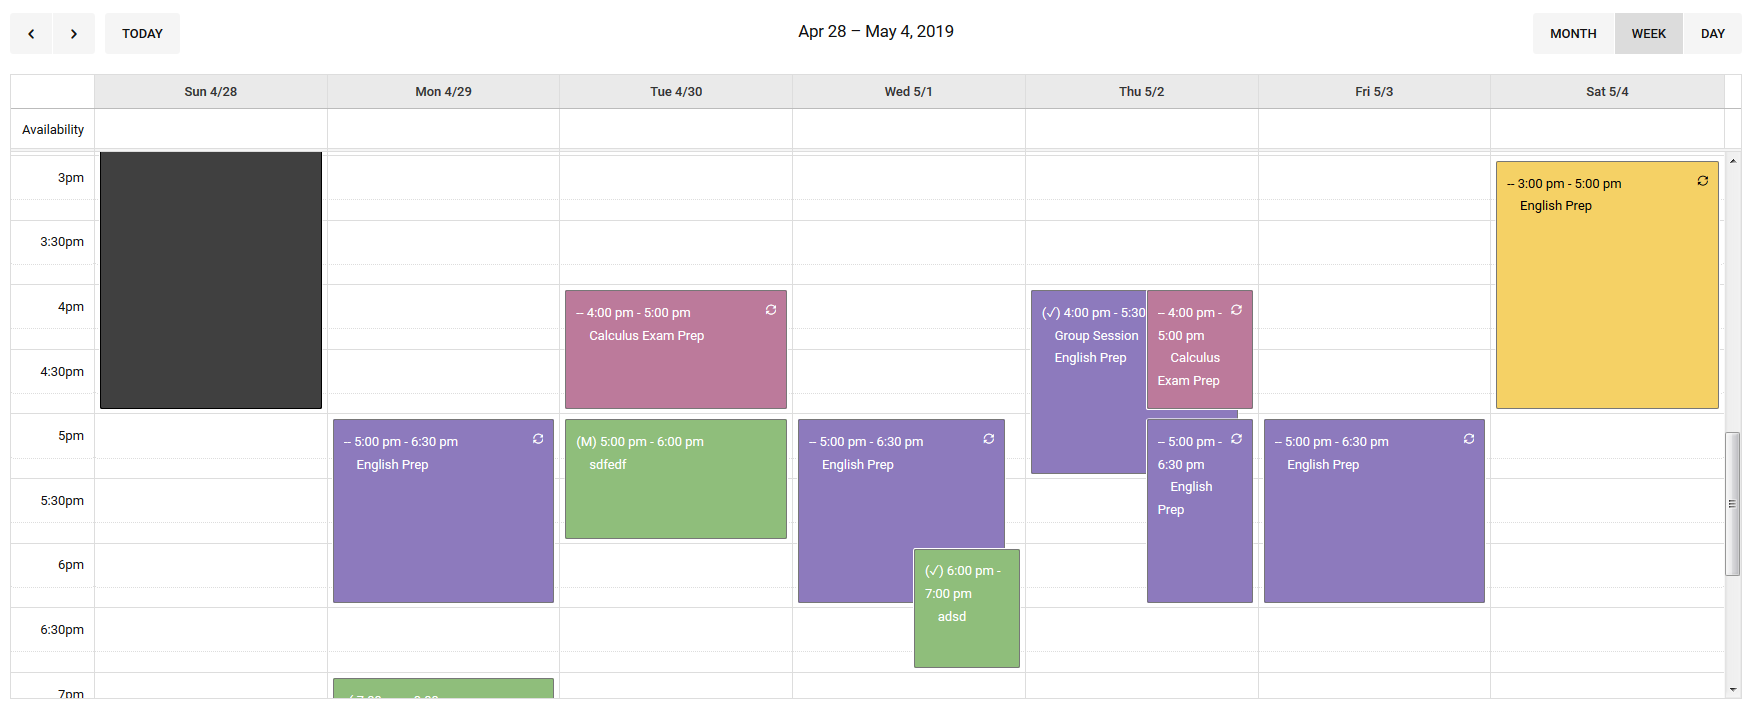 Colorful weekly appointment schedule image